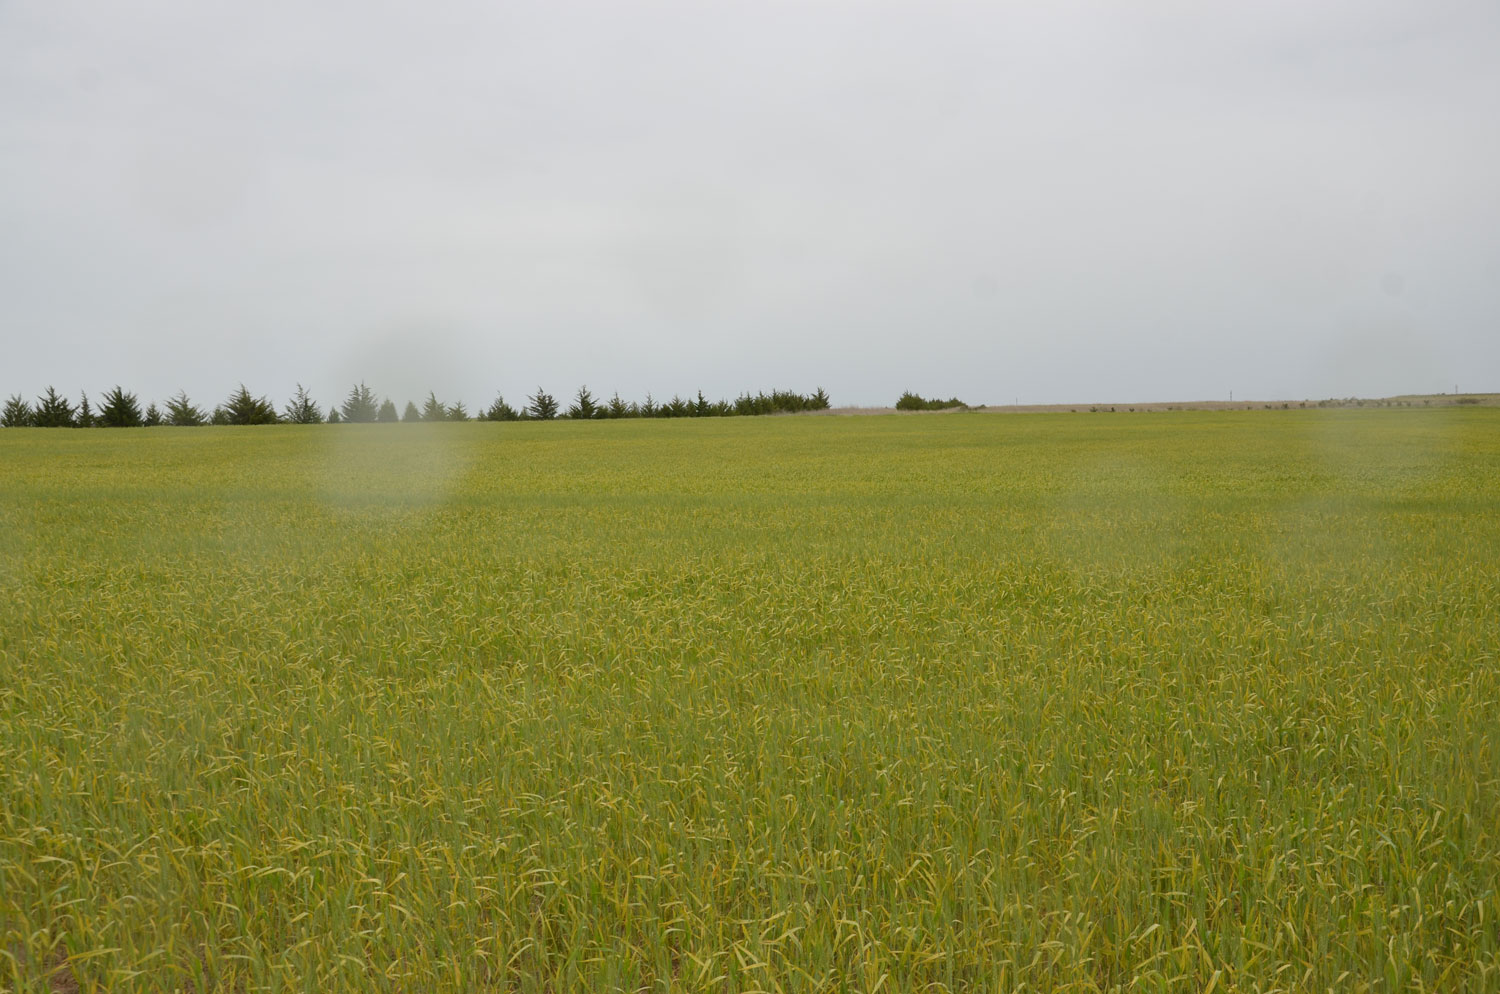 Stripe rust causing field of wheat to yellow